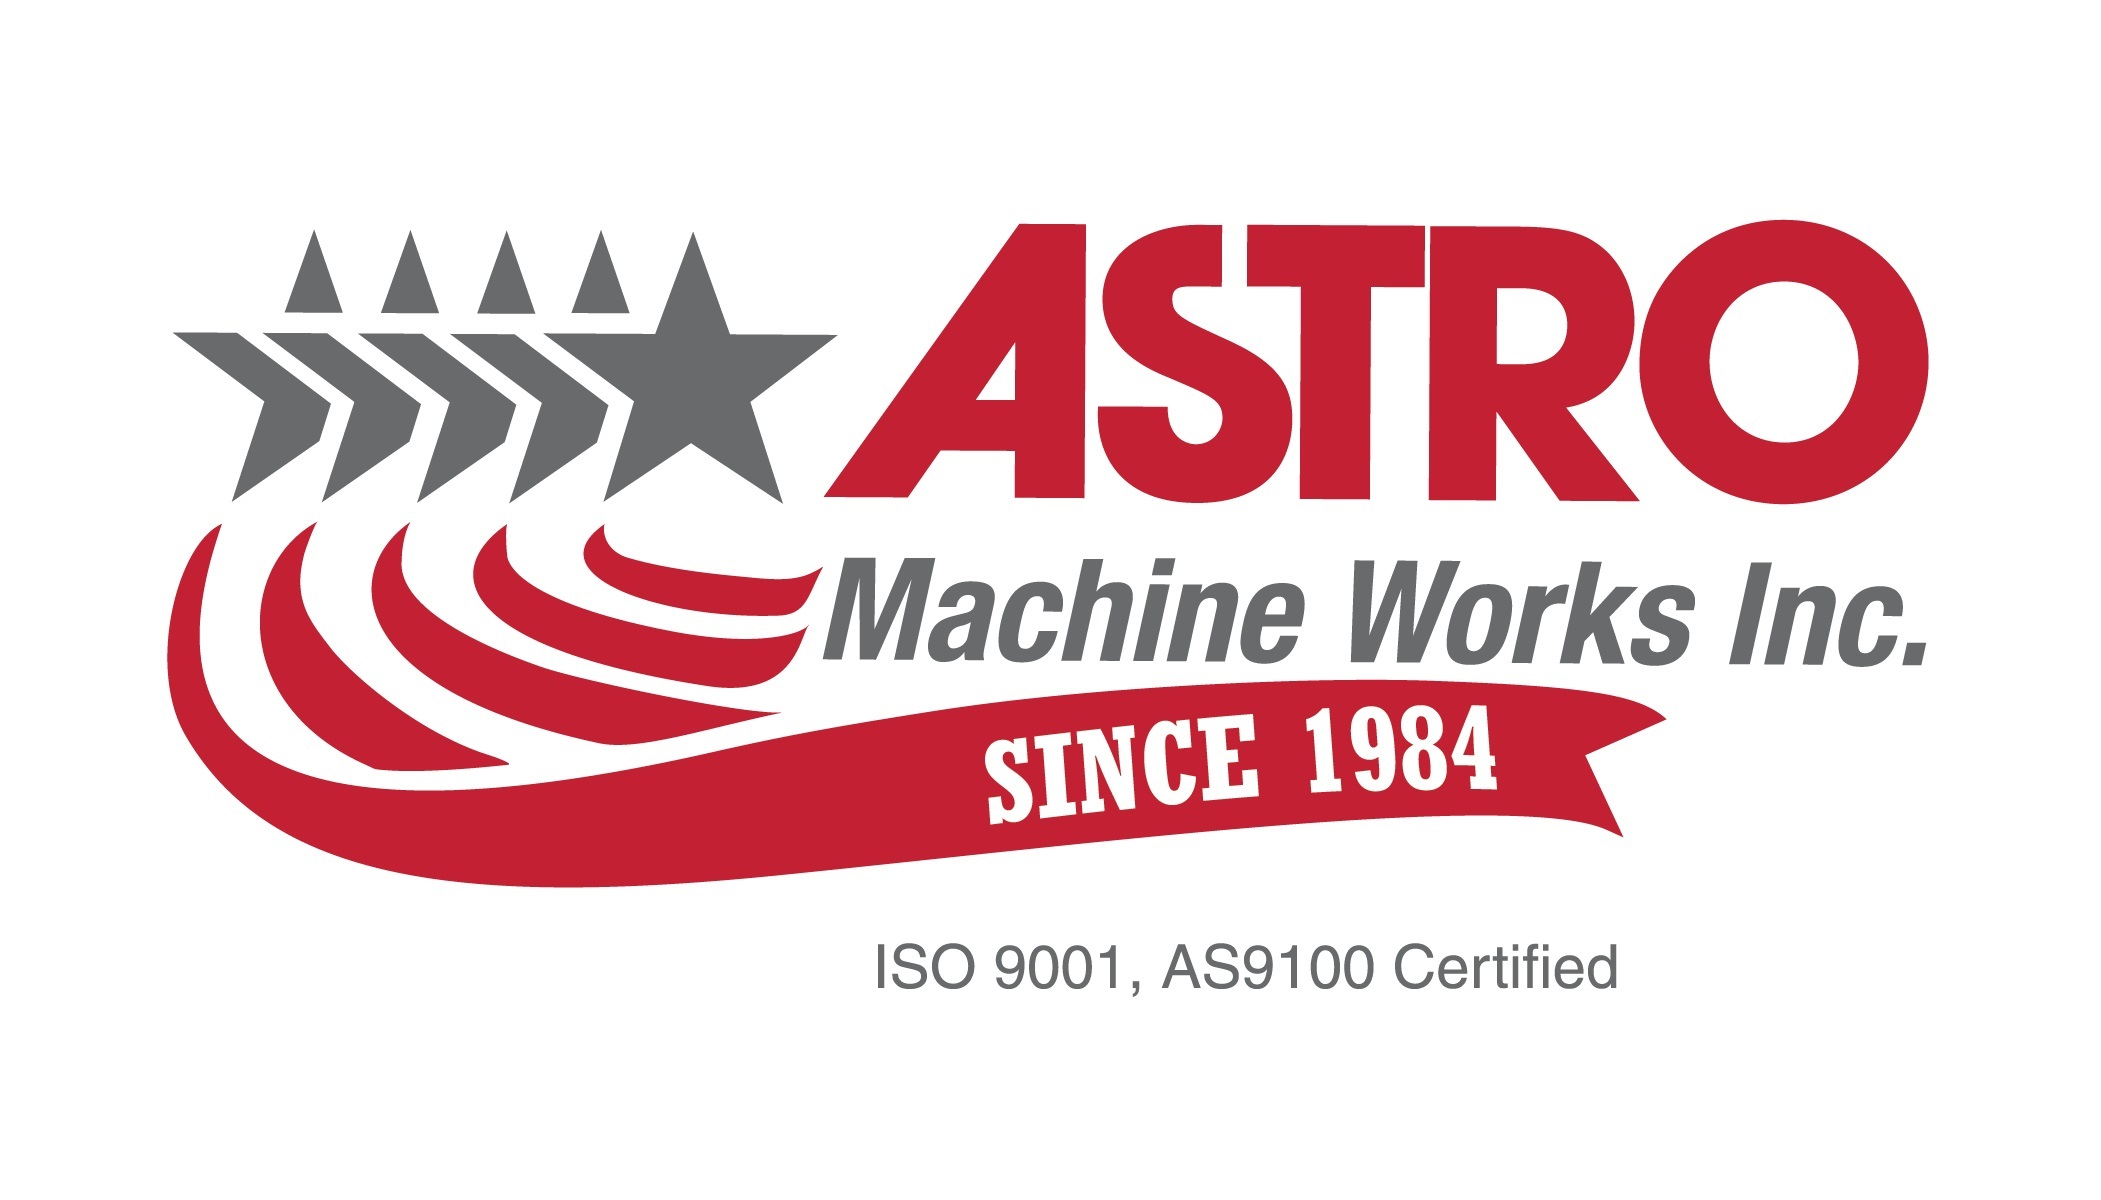 Astro Machine Works logo